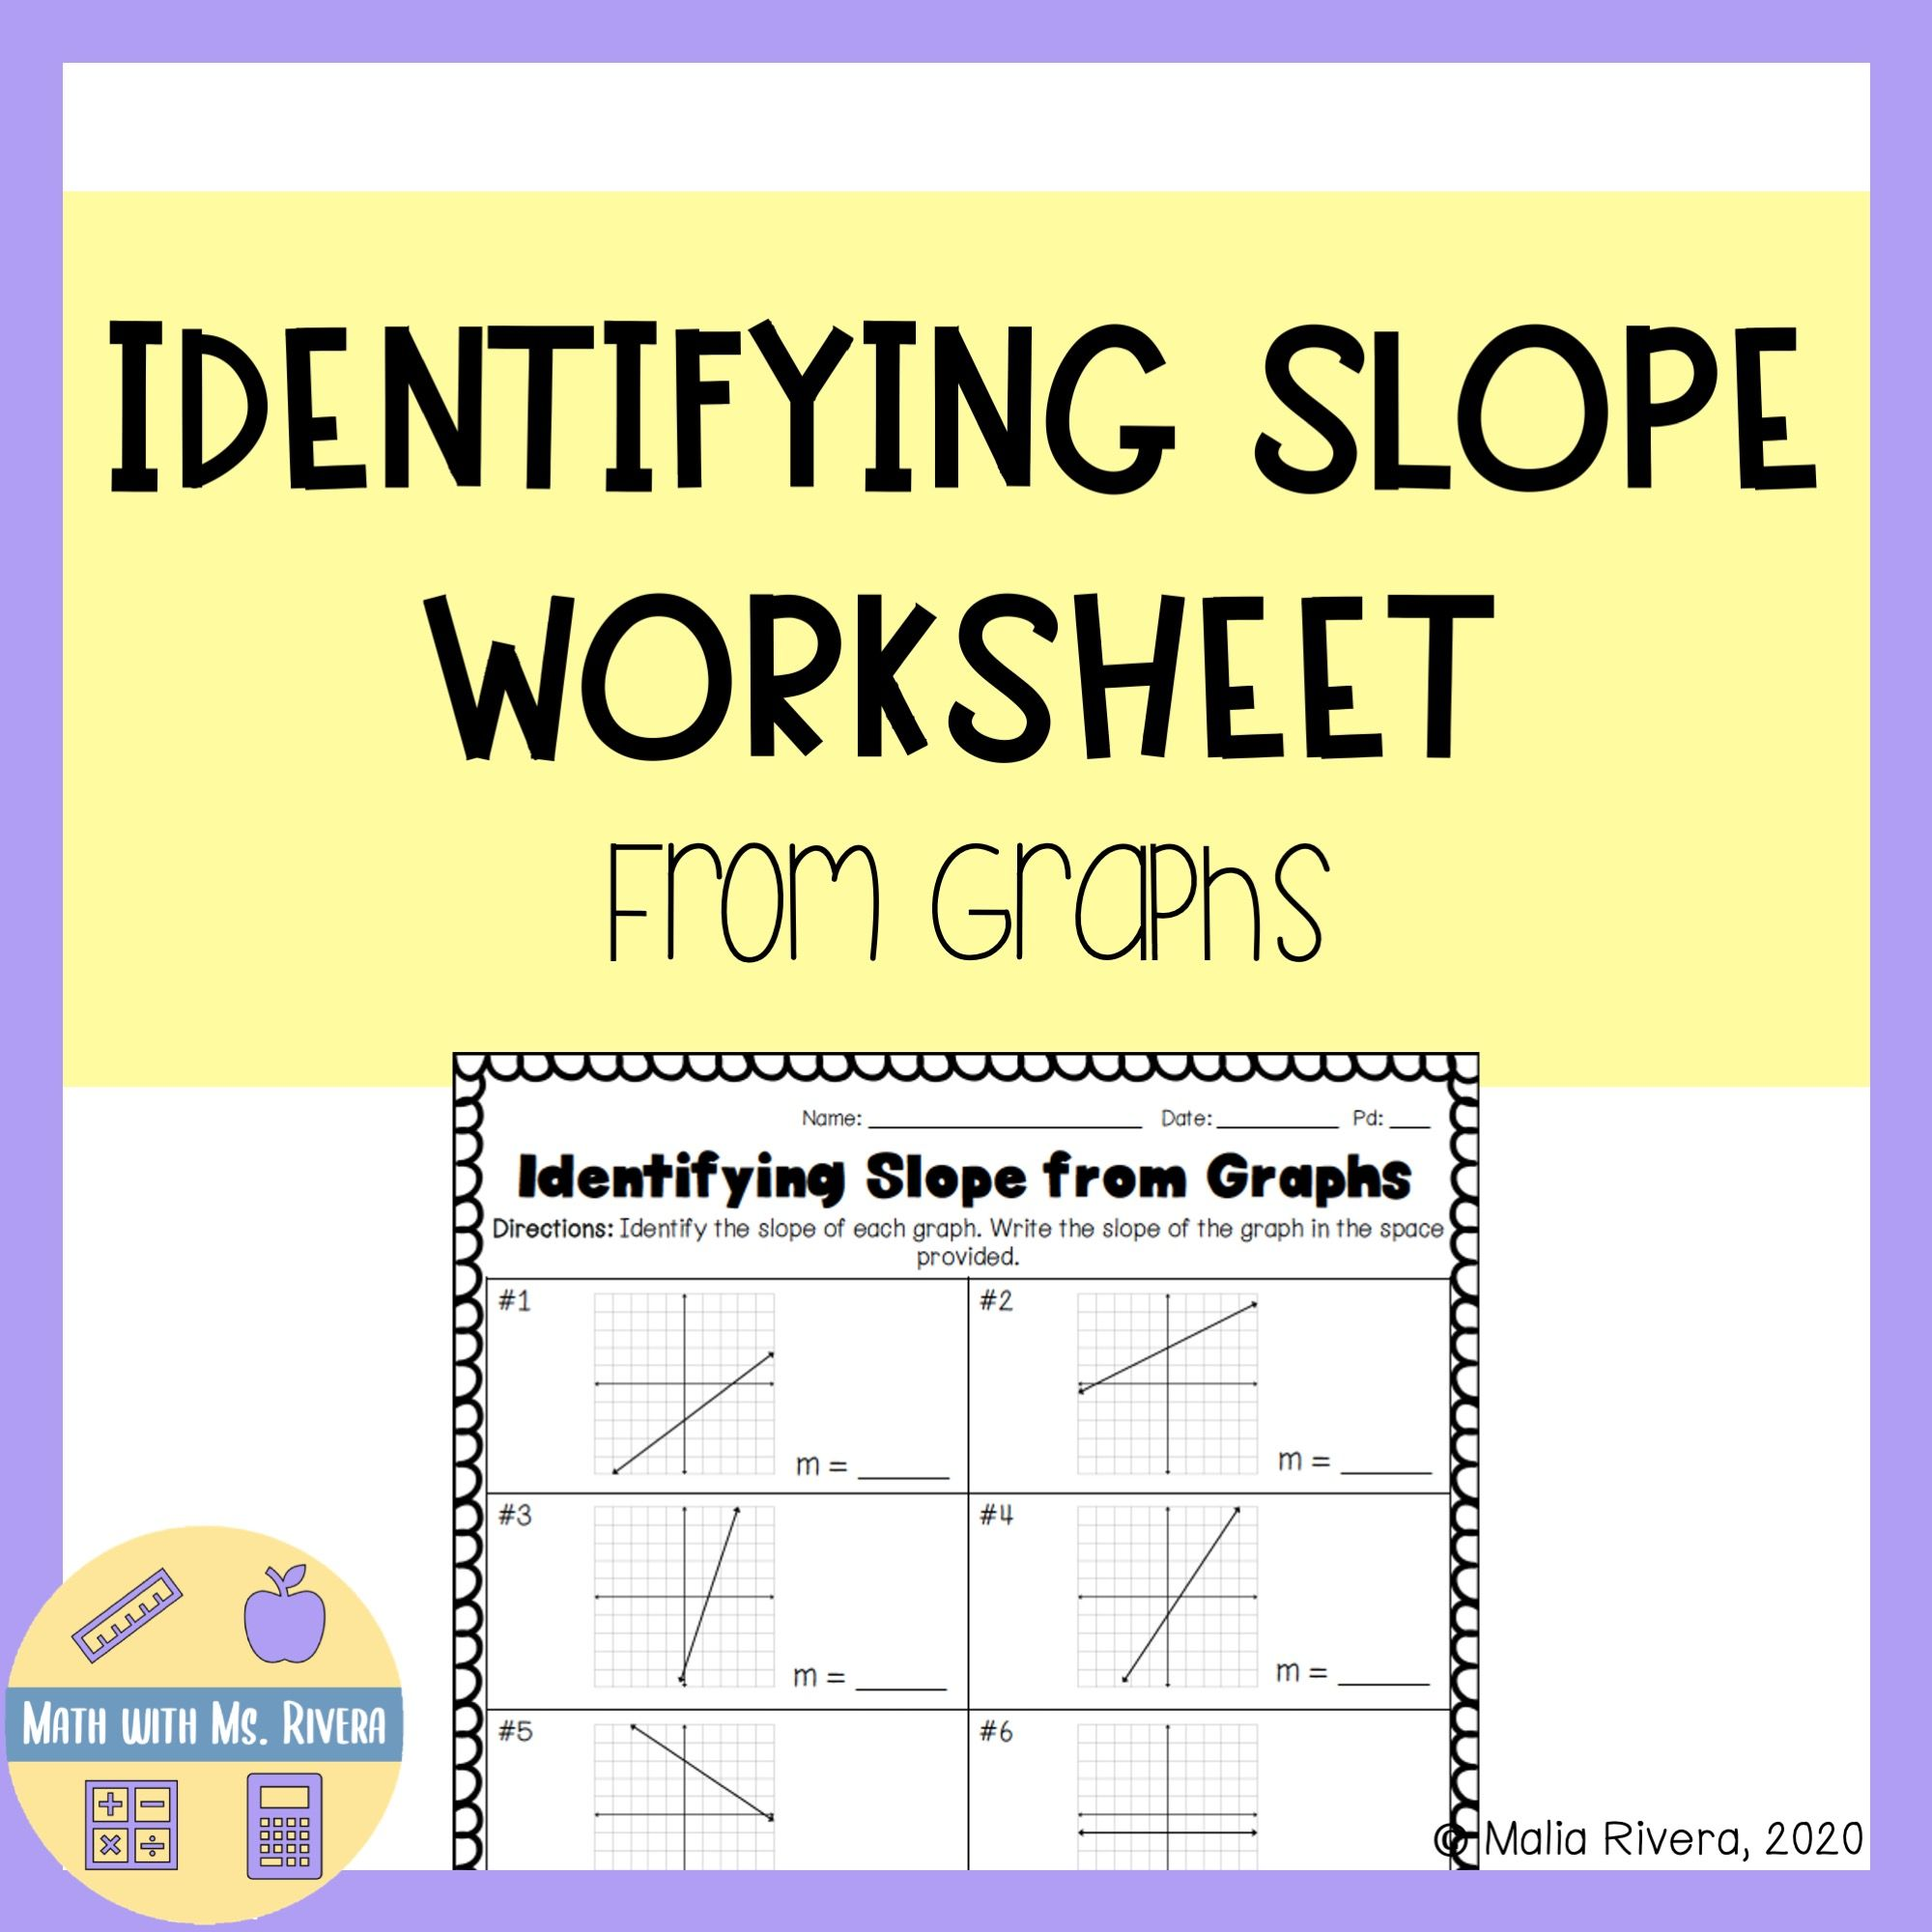 medium resolution of Identifying Slope from Graphs Worksheet   Graphing worksheets